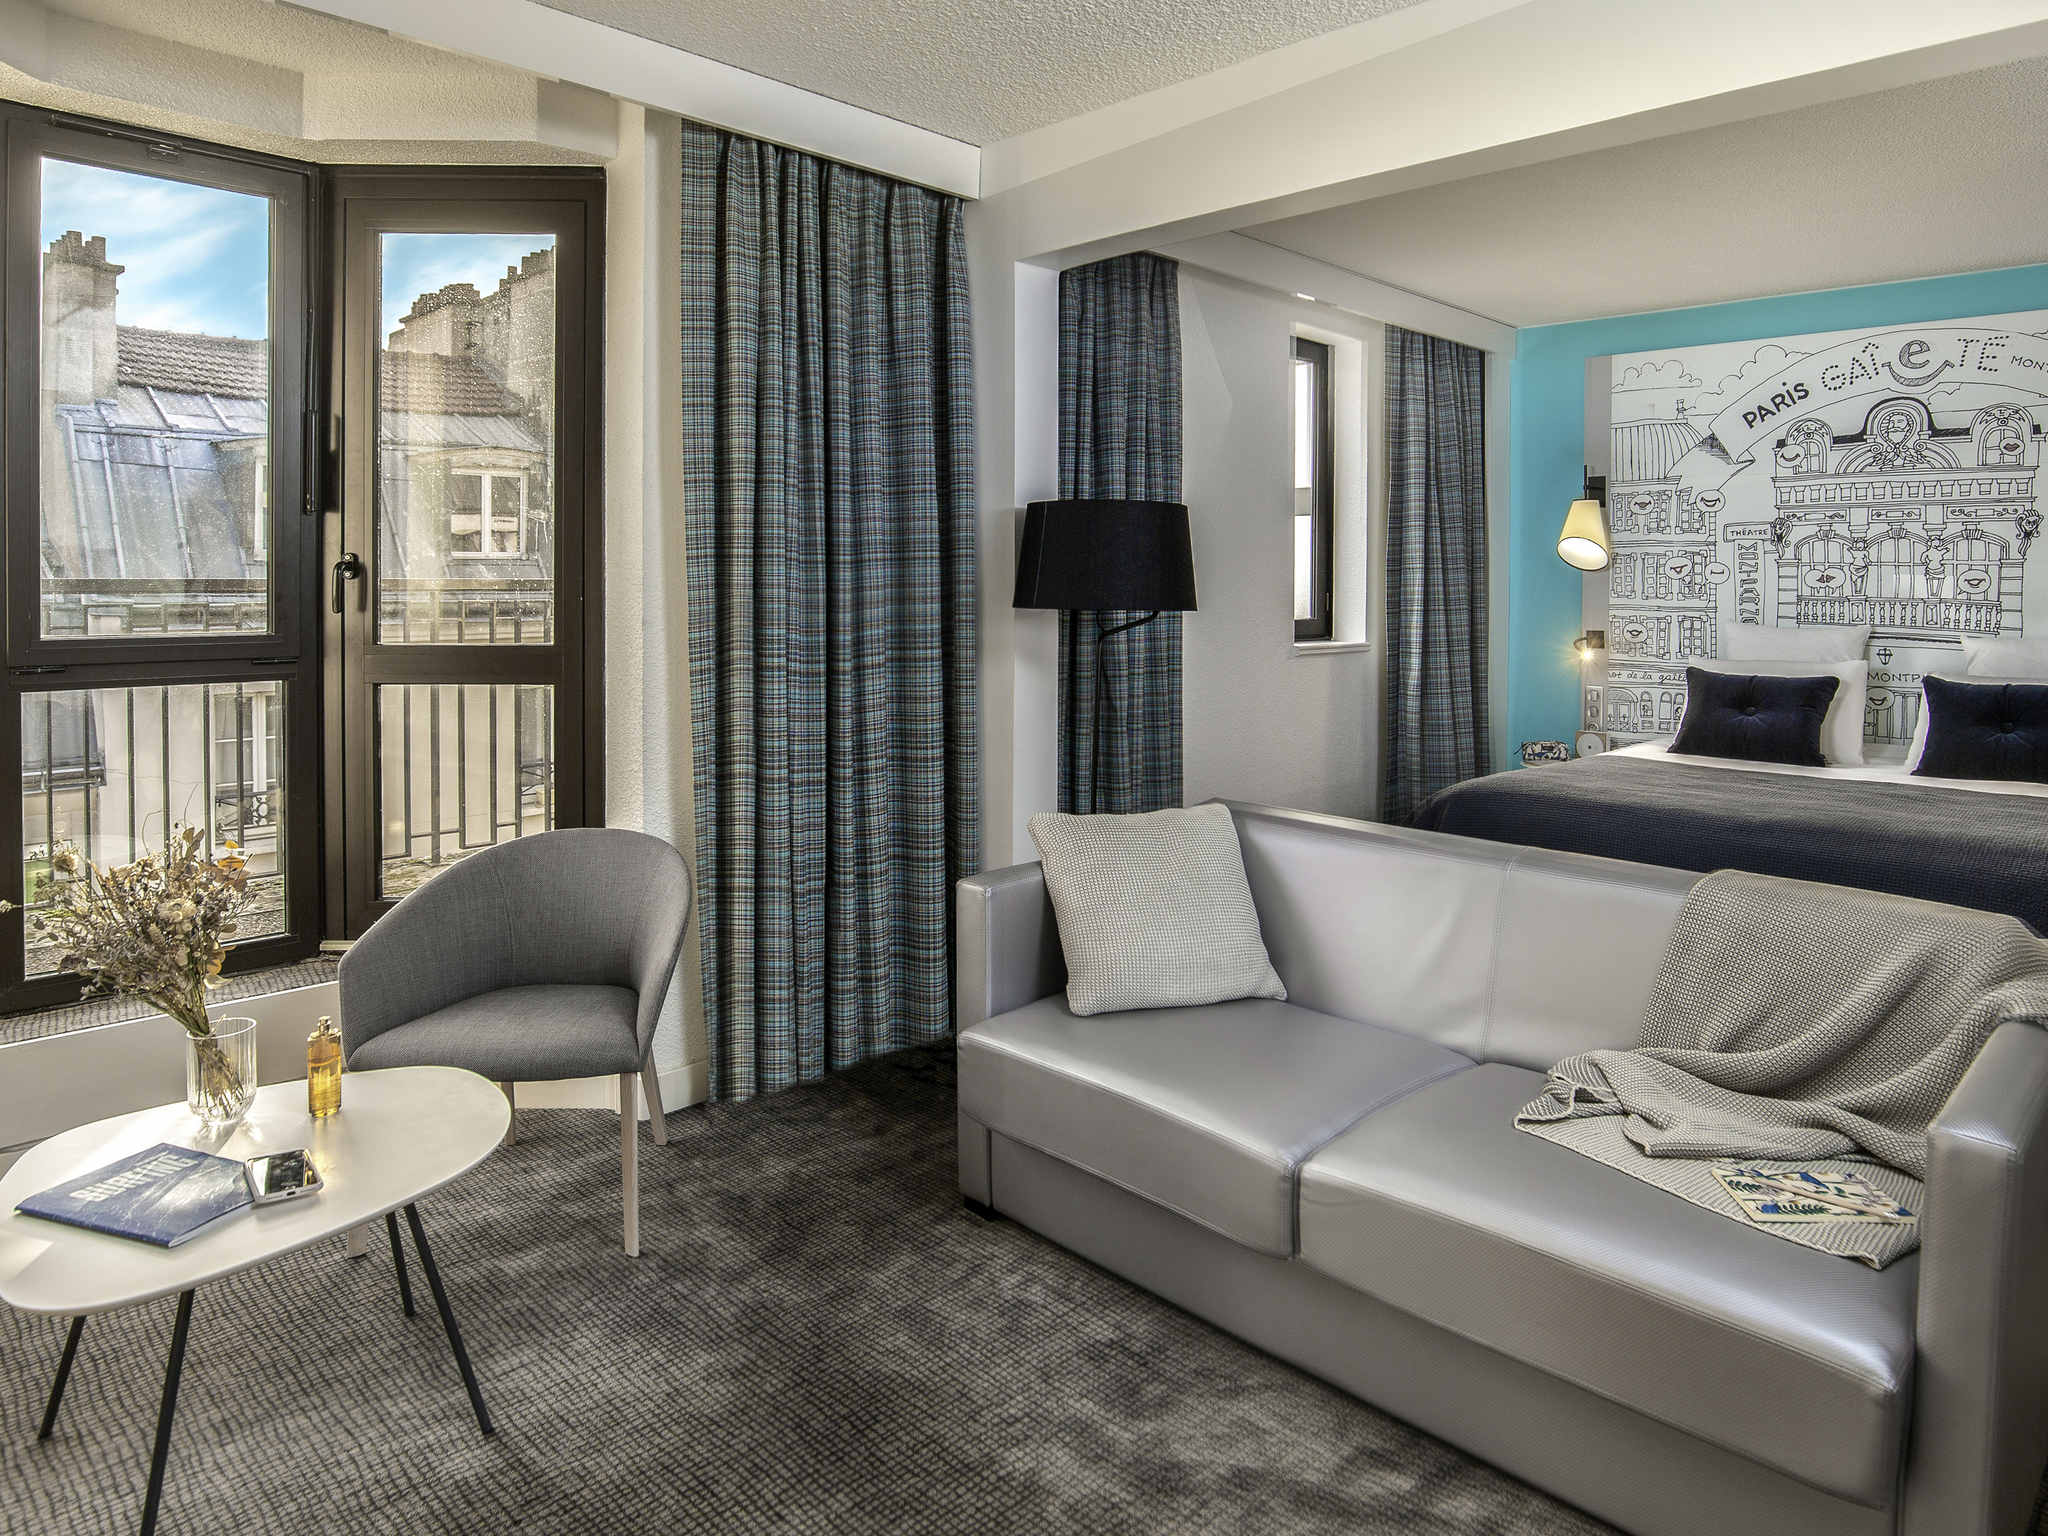 hotel di hotel mercure paris gare montparnasse hotel mercure paris gare montparnasse. Black Bedroom Furniture Sets. Home Design Ideas